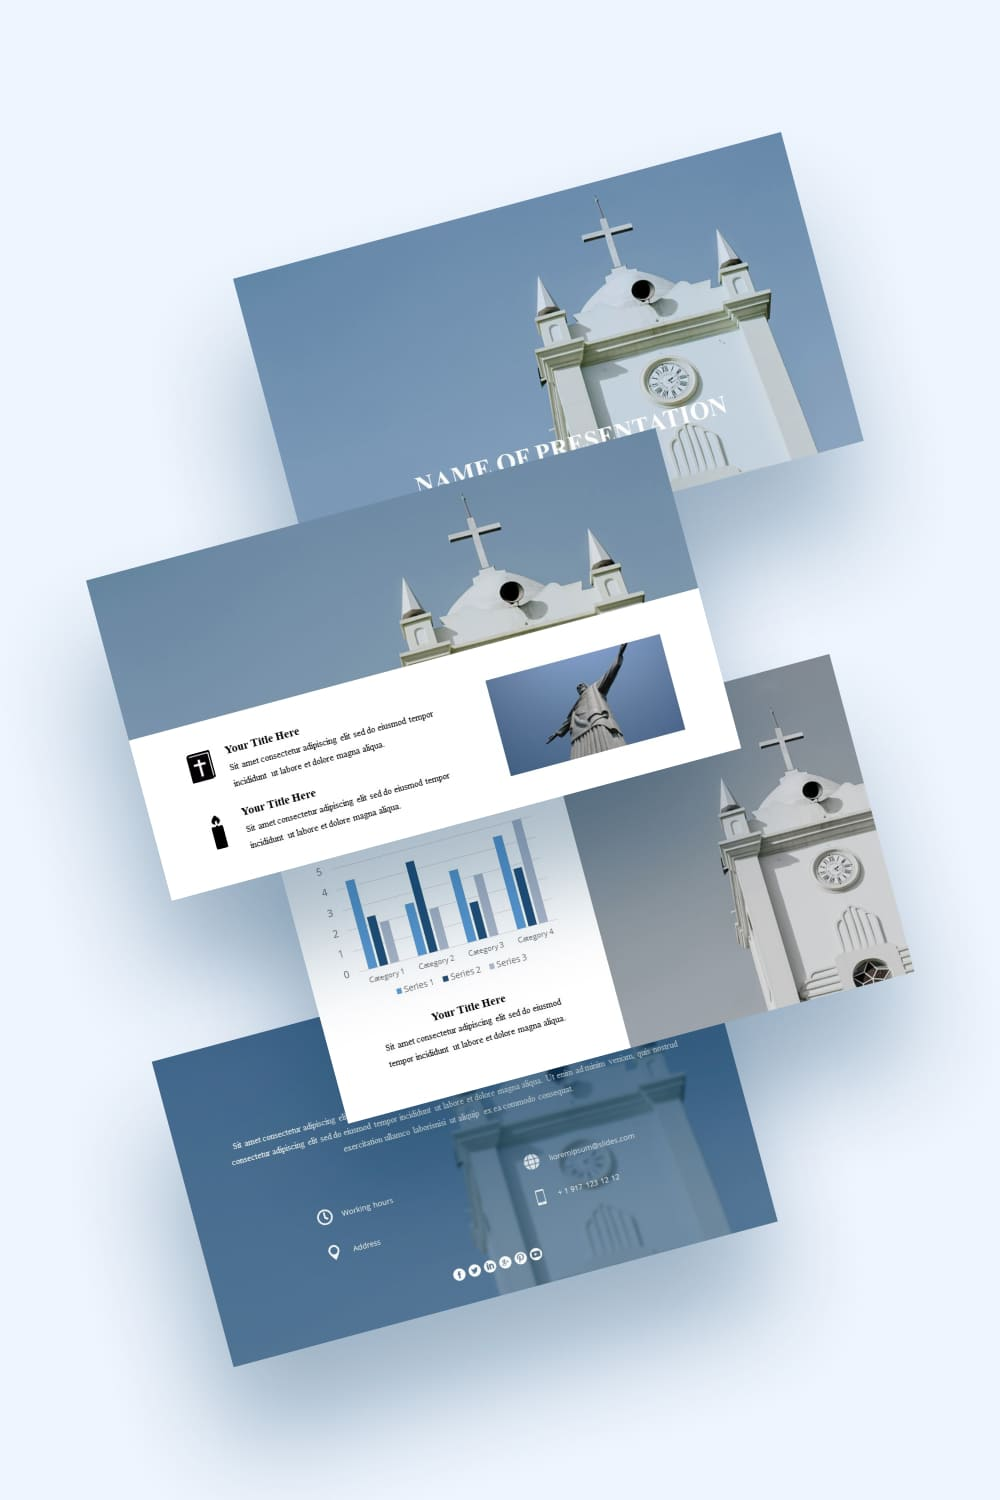 The freedom of this template is mesmerizing. Through it, you can convey any information to your audience with ease.